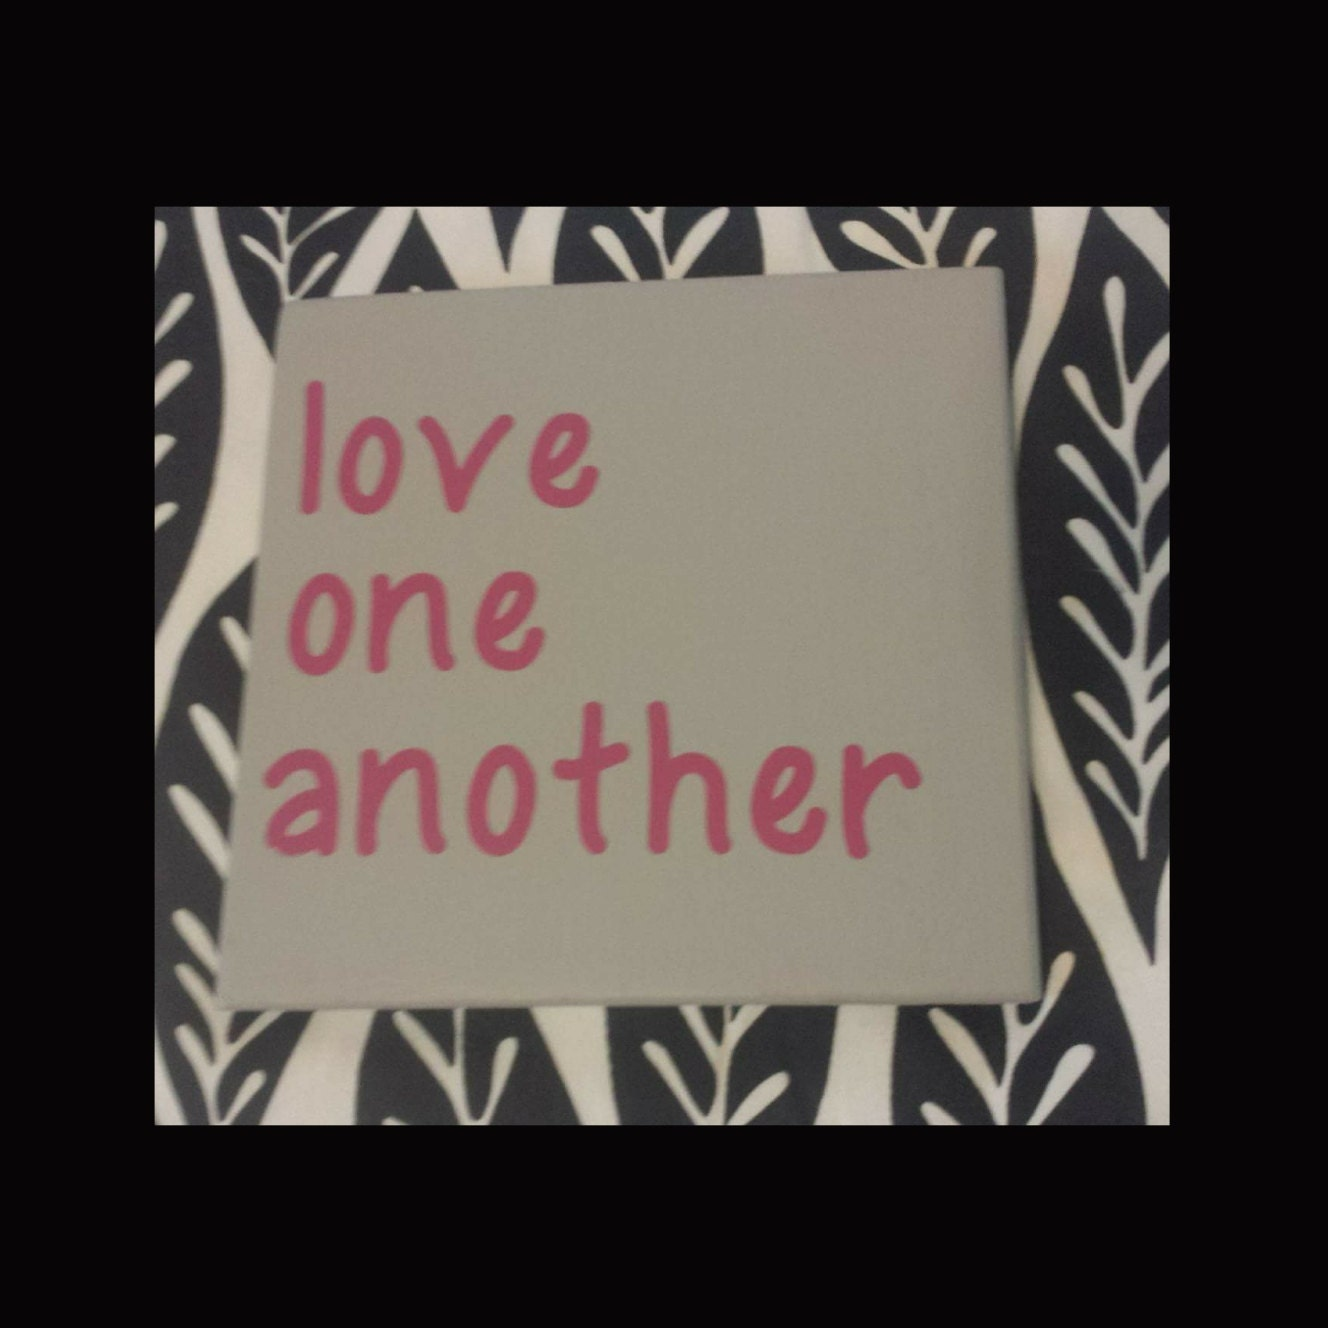 Love One Another: Love One Another Wood Sign By PiccadillyWoods On Etsy